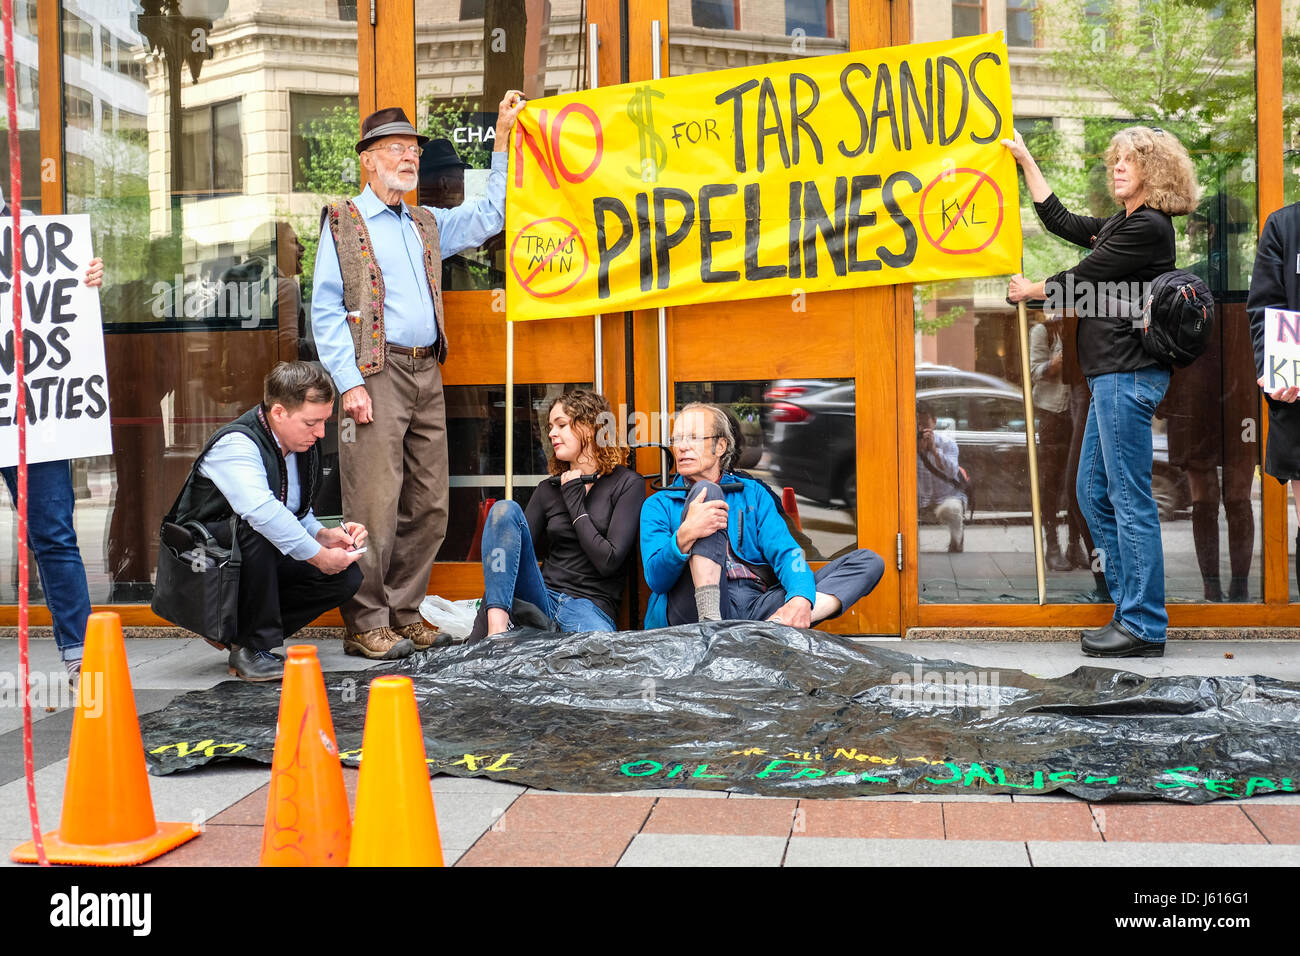 People protesting tar sands pipeline in front of Chase Bank, Seattle,  Washington, US